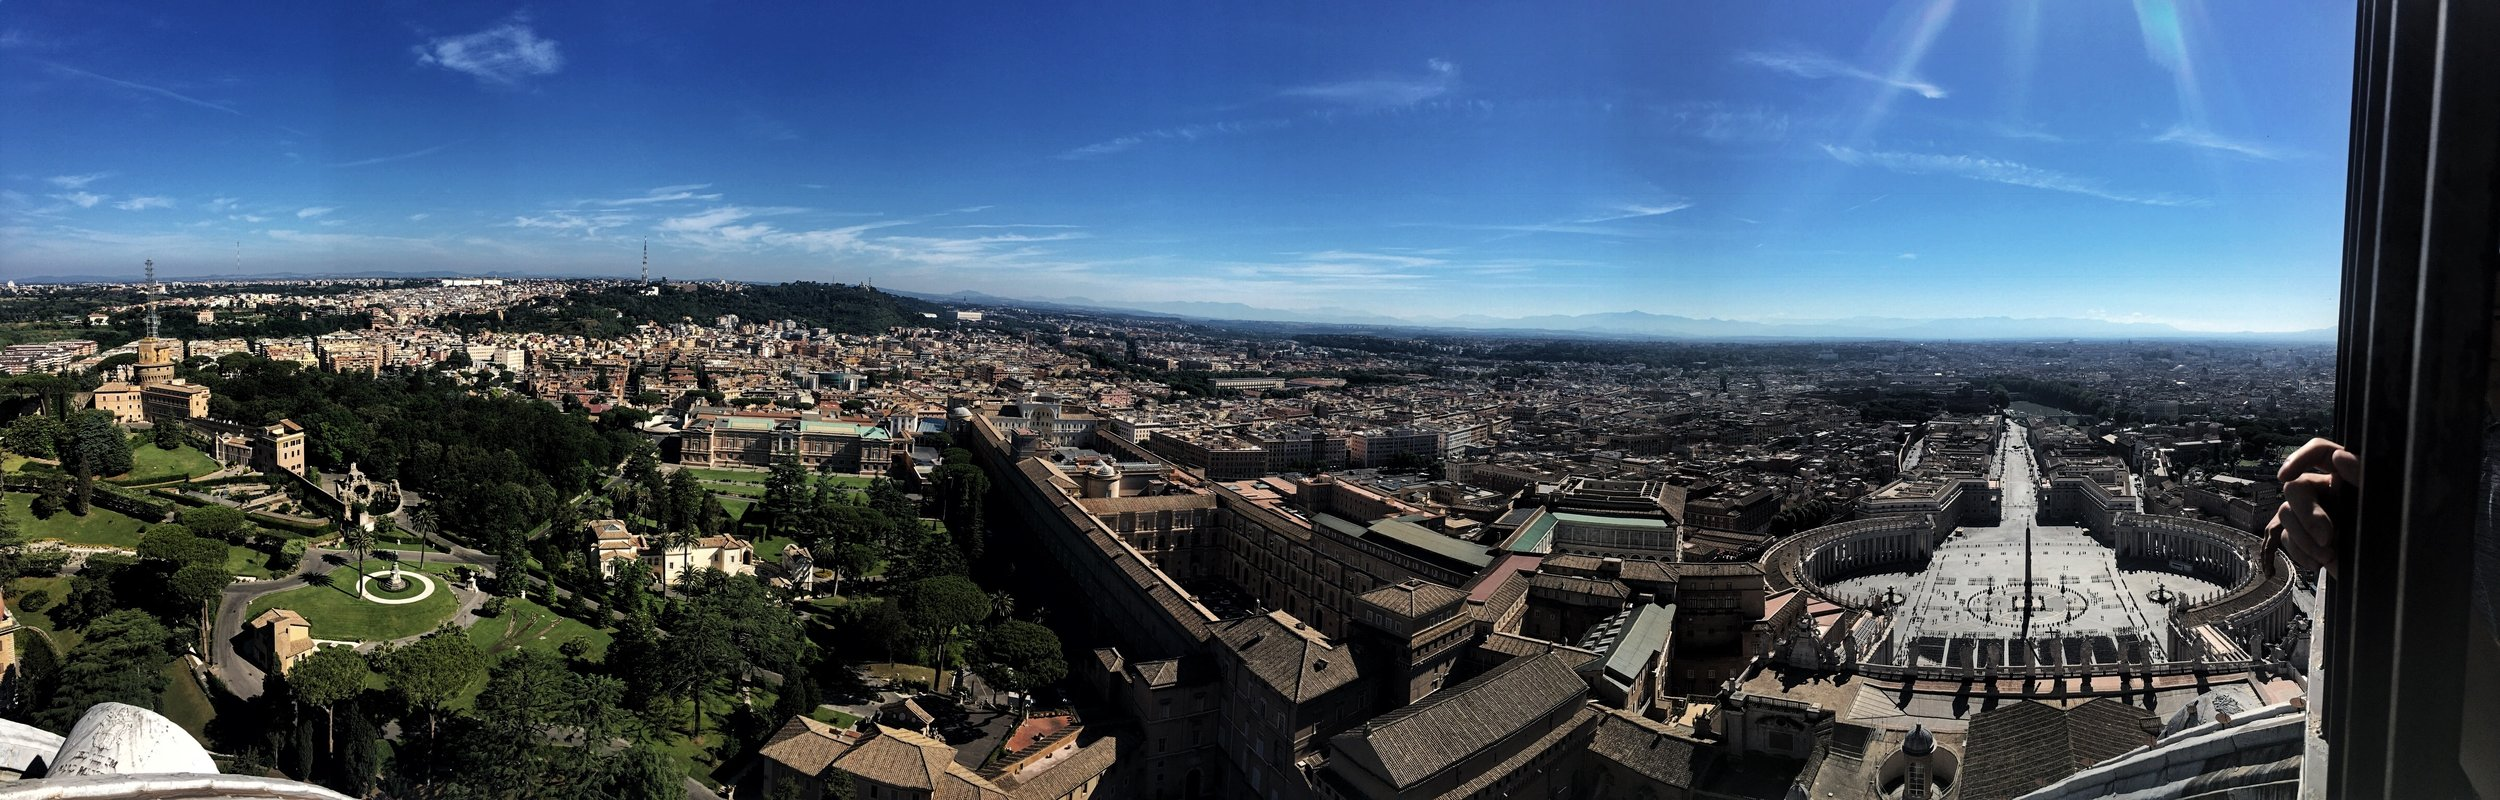 A panorama shot taken by Naomi – Vatican museum in the center, the square on the right.